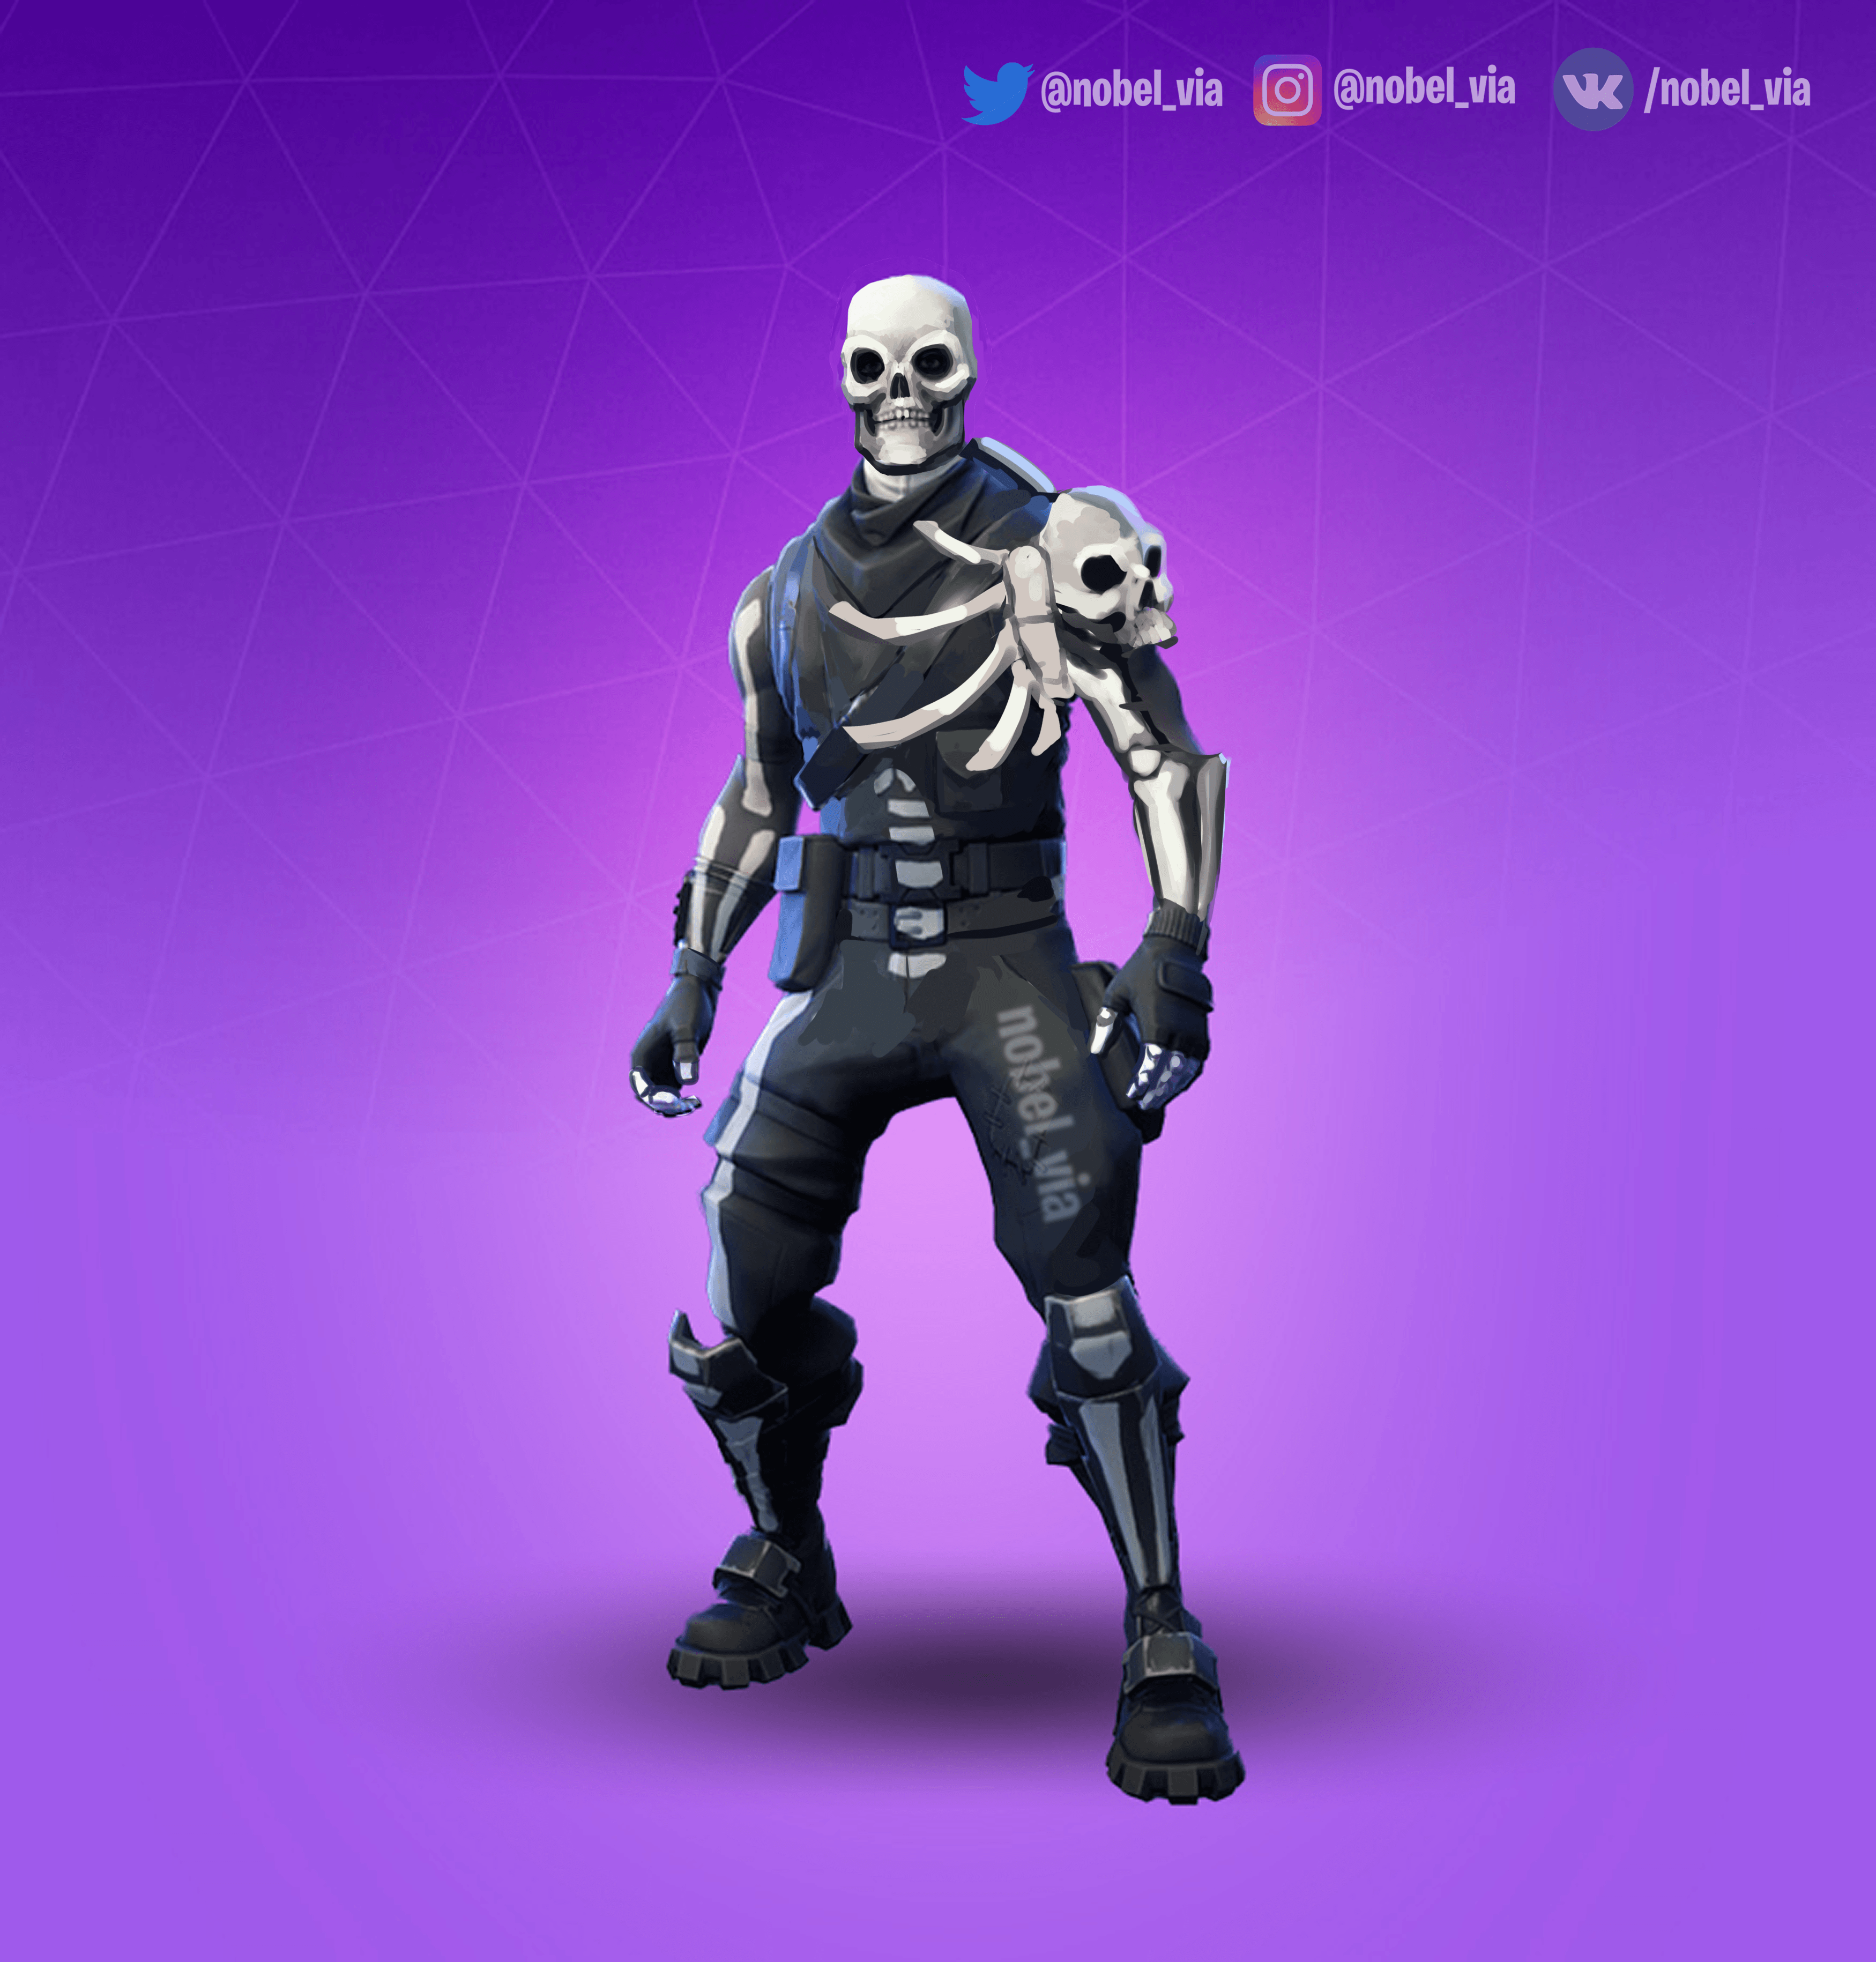 I Know That Skull Trooper Suppose To Be Just Halloween Costume But